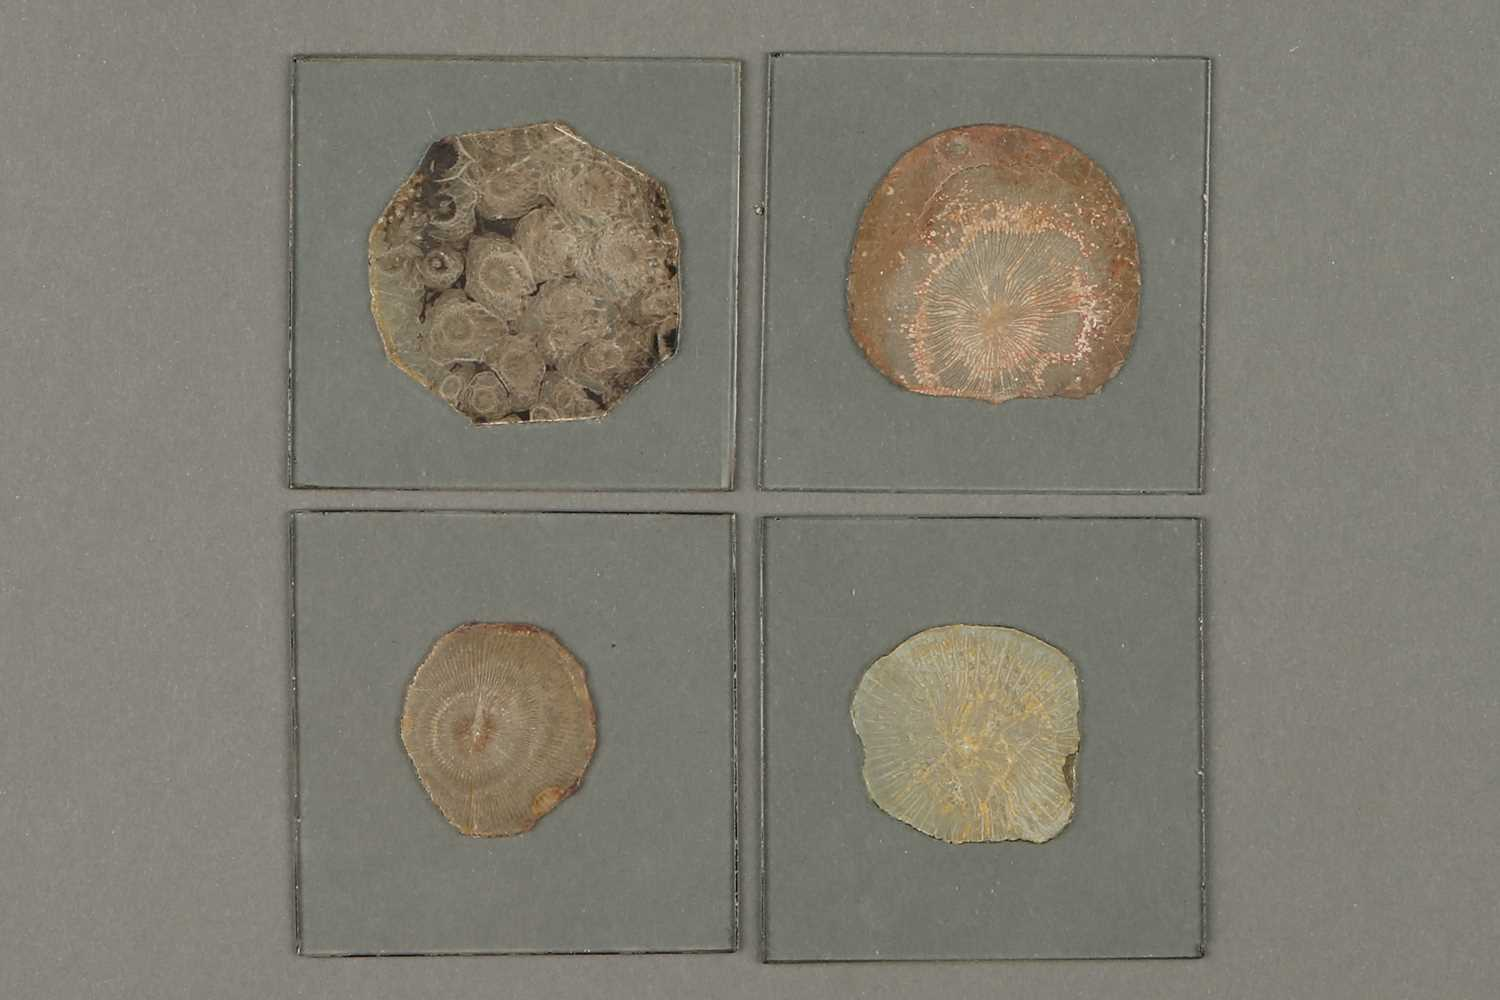 Lot 31-A Collection of Large and Early Mineral Microscope Slides